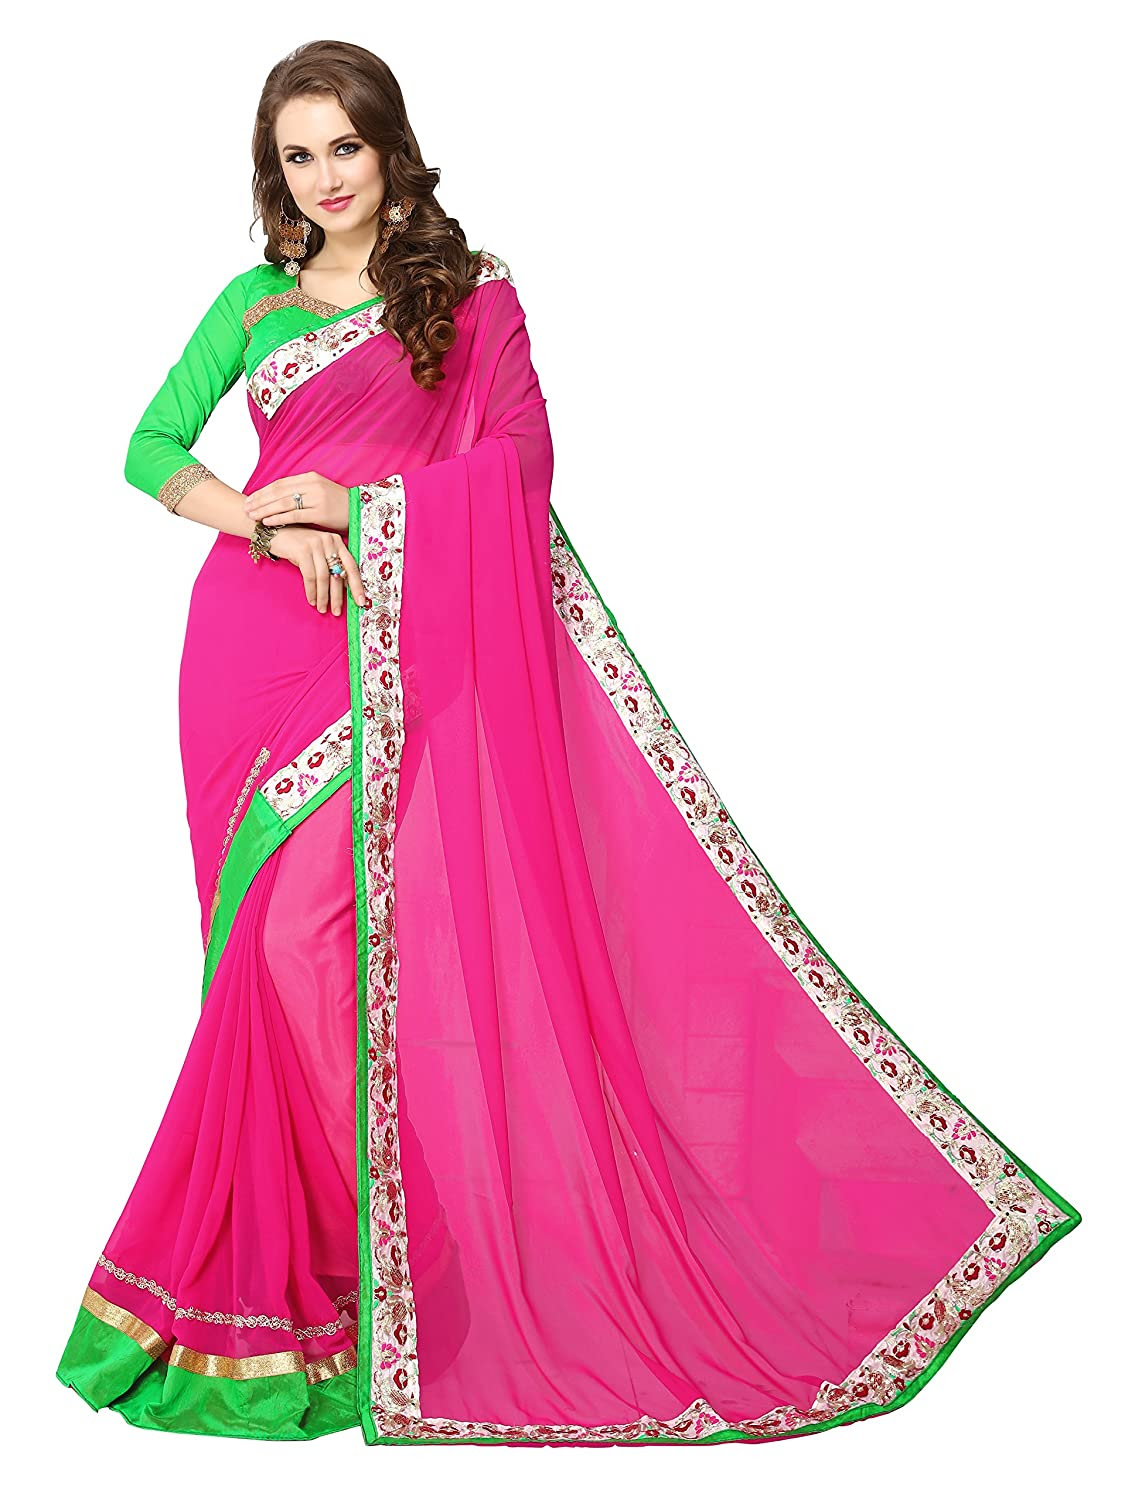 Deals on Panchratna Saree For Women